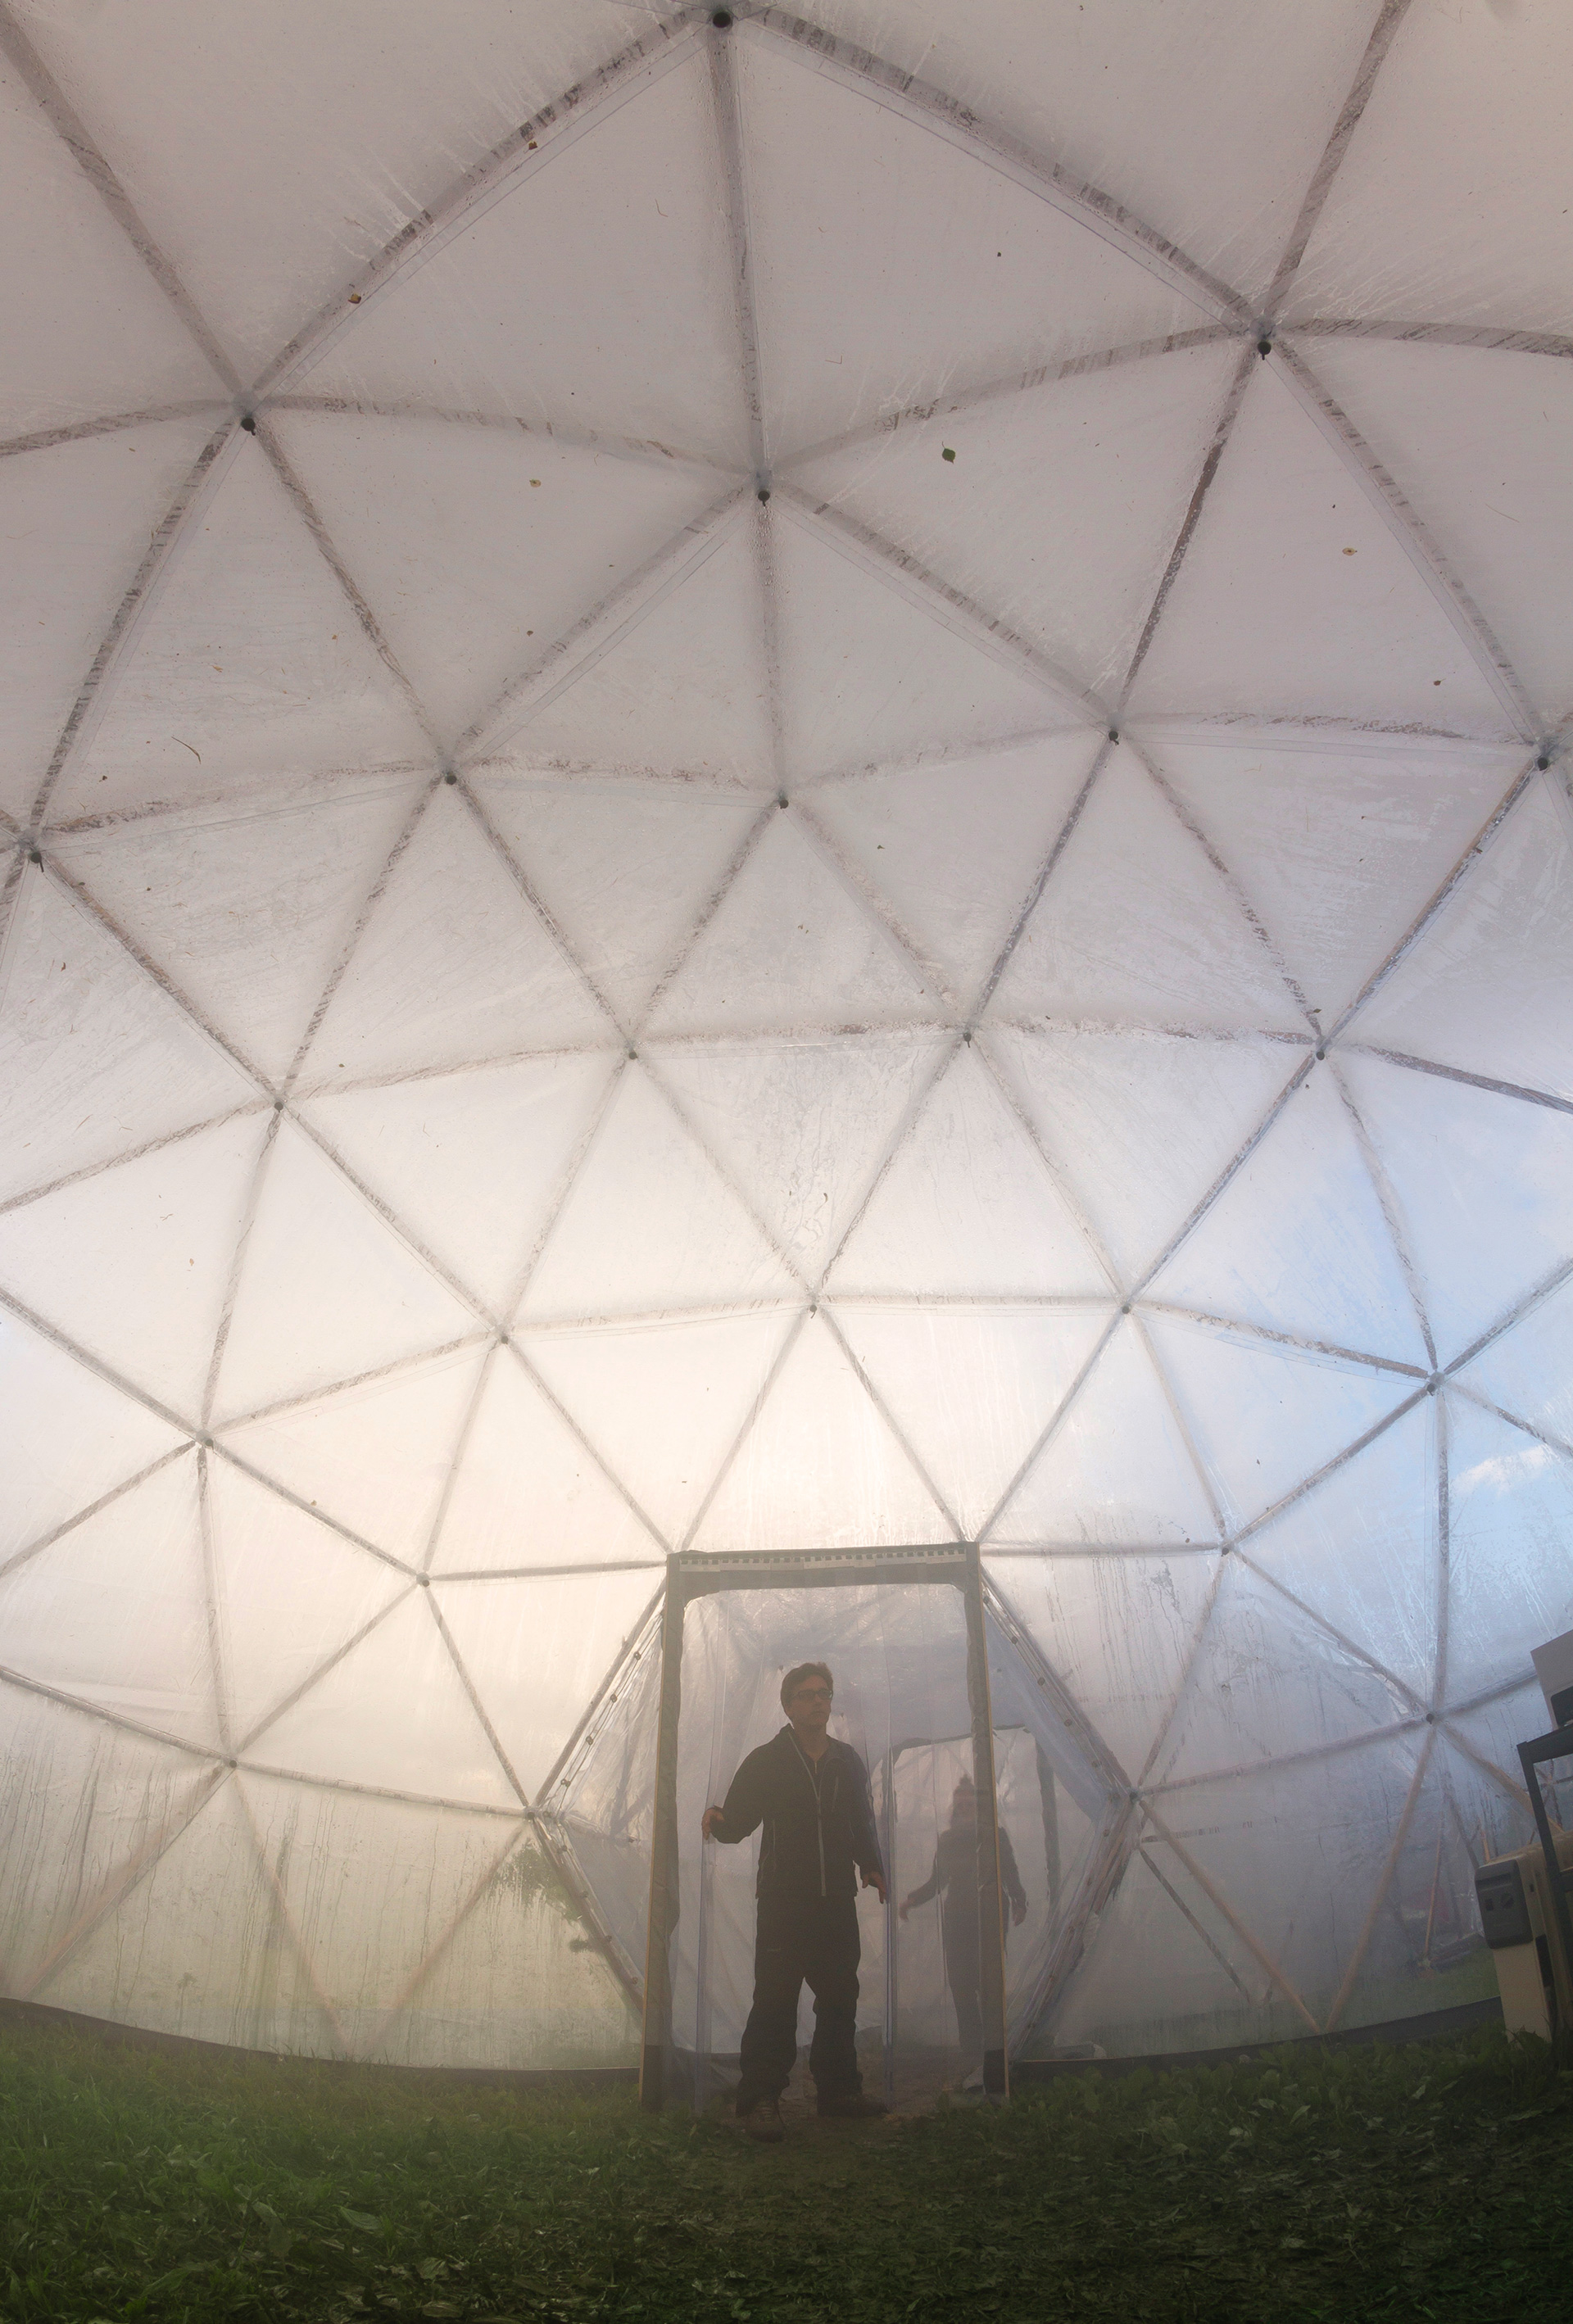 Inside the Pollution Pod visitors feel unease and shortness of breath as each pod imitate the air quality of five global cities | Pollution Pods | Michael Pinsky | STIRworld